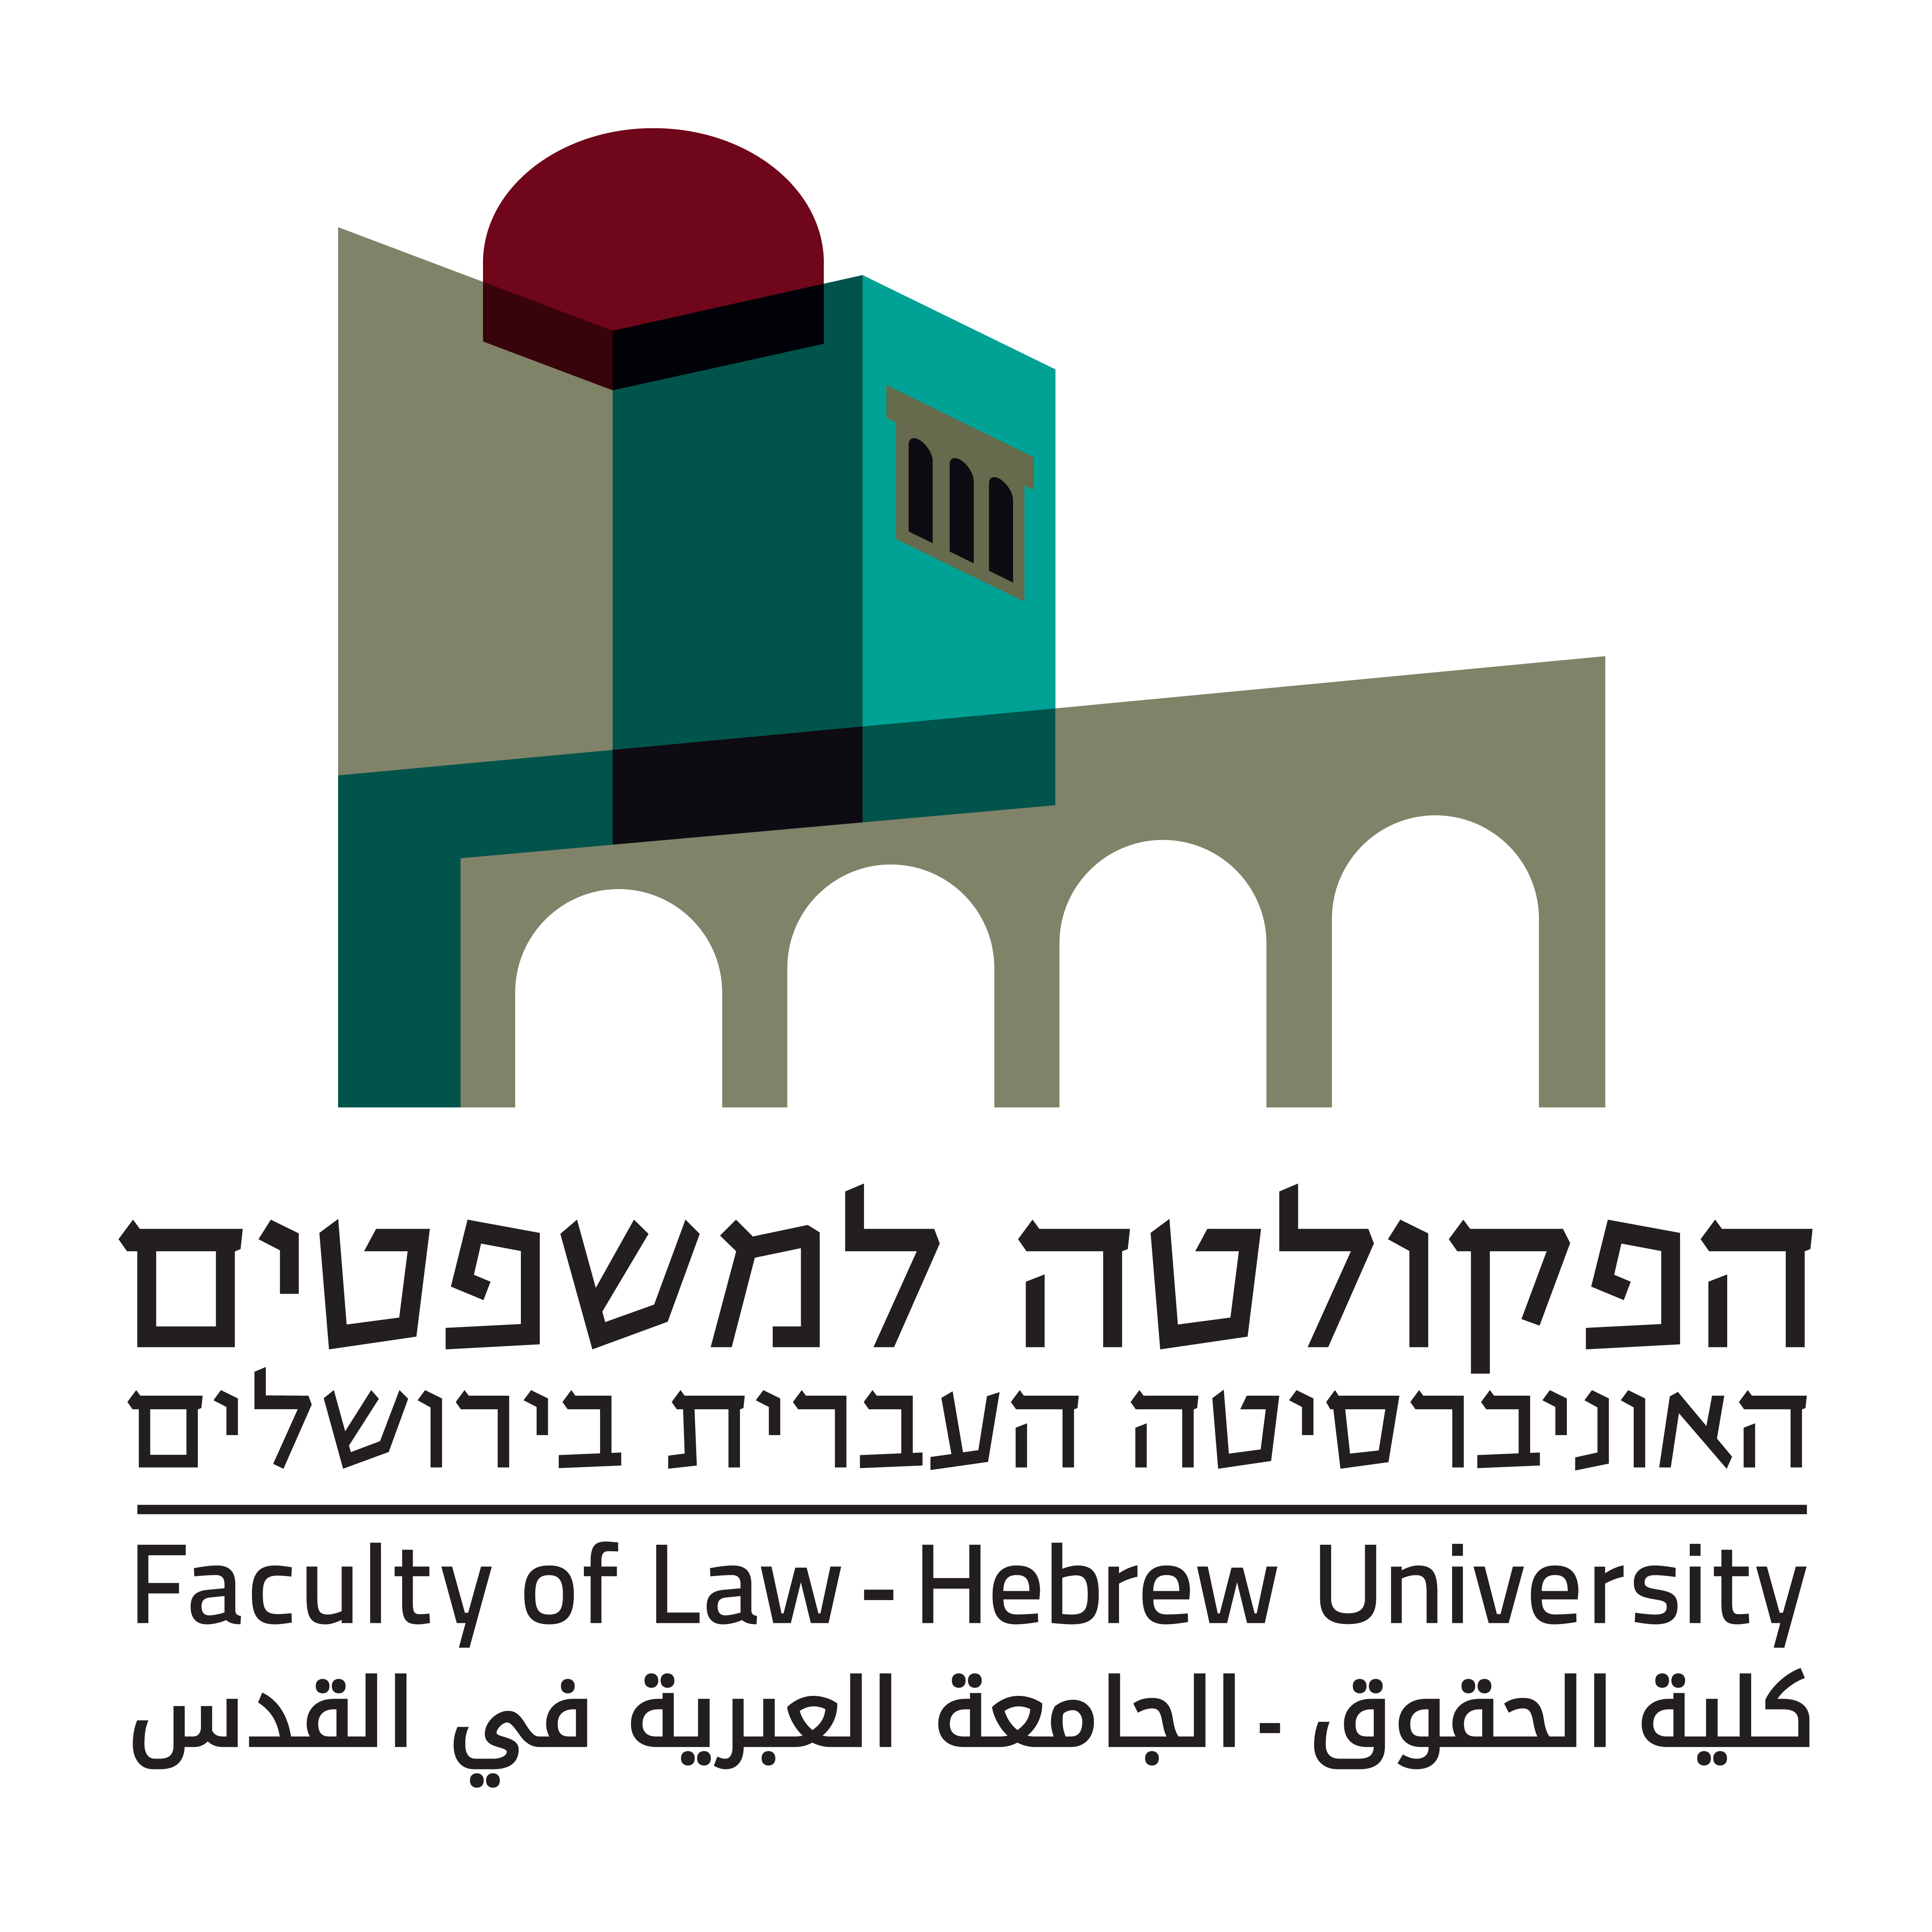 Hebrew University faculty of law